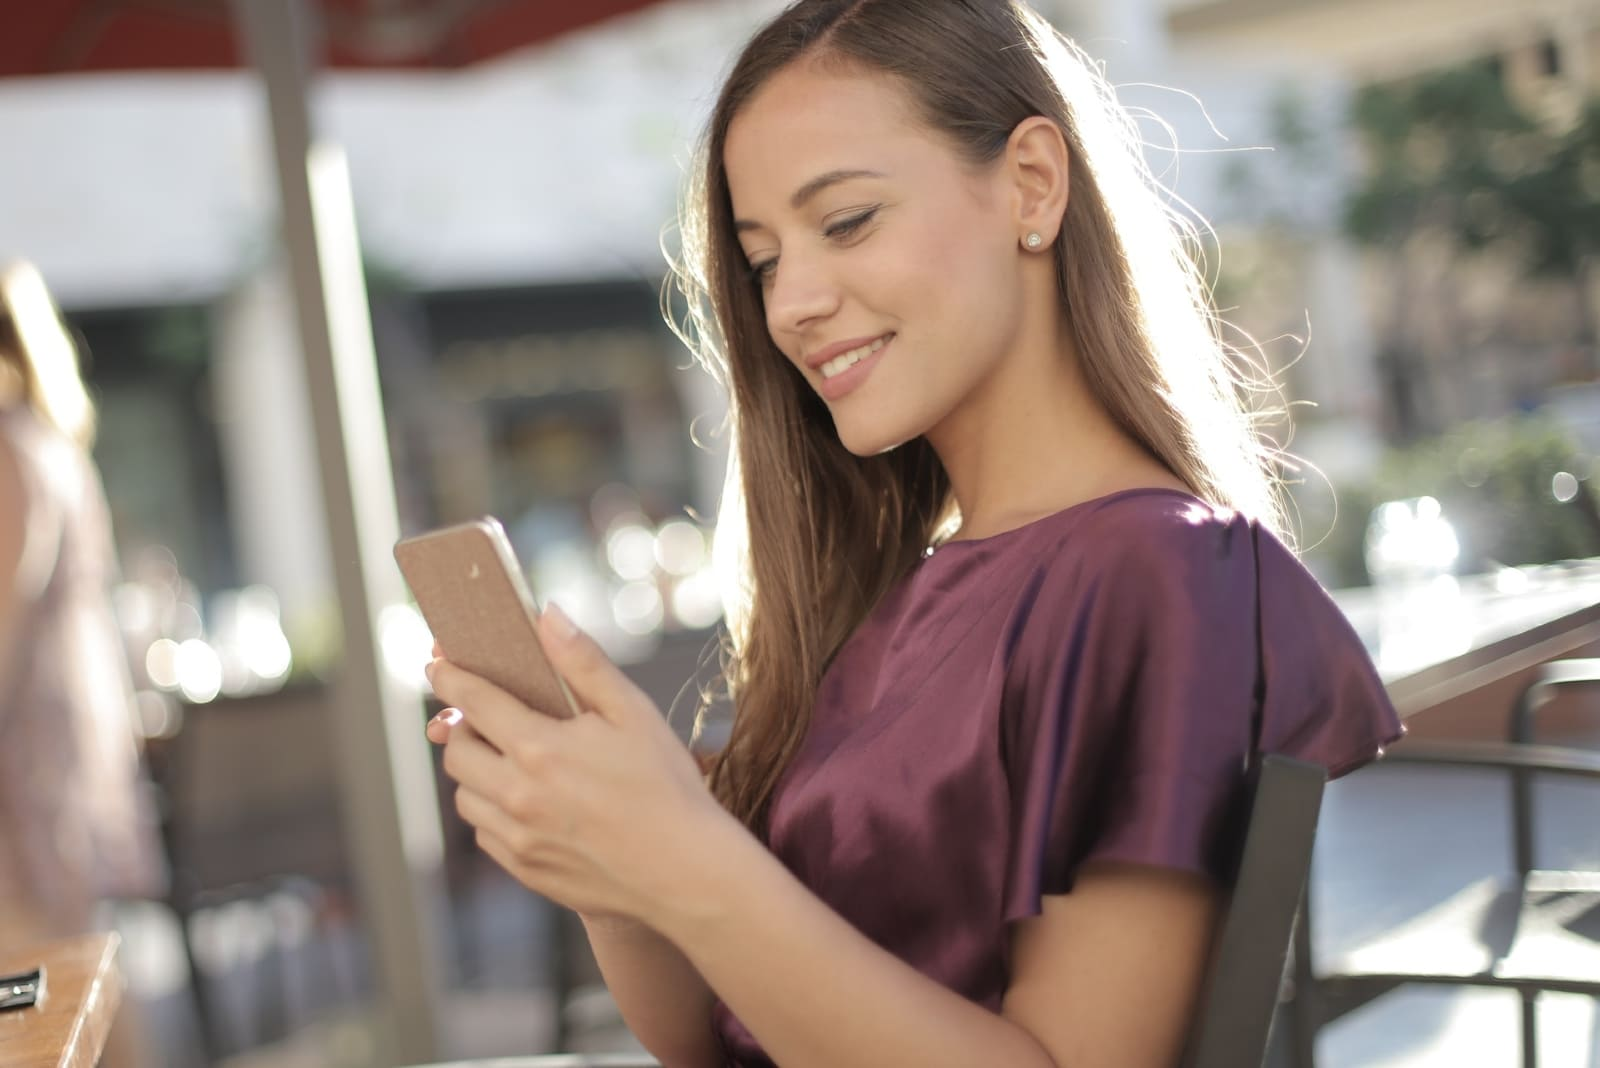 happy woman in purple blouse looking at phone